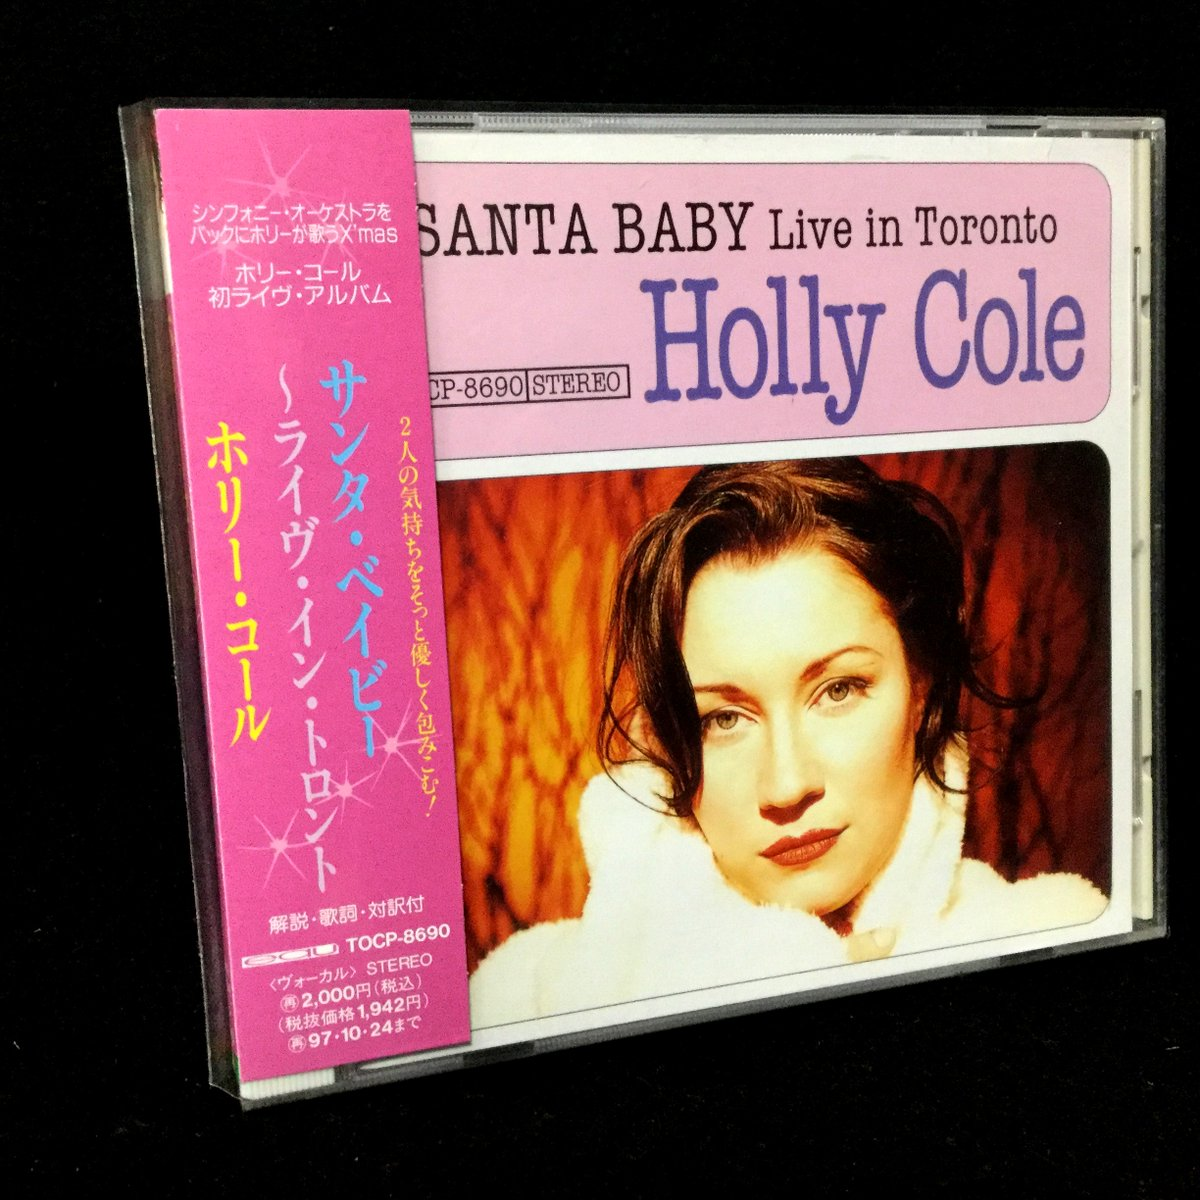 25th ANNIVERSARY!!!!!!!!!!!!!!!!!!!!!!!!!!!!!!! HOLLY COLE / Santa Baby - Live In Toronto [October 25th, 1995 JAPAN] https://t.co/0ZMksWezxz